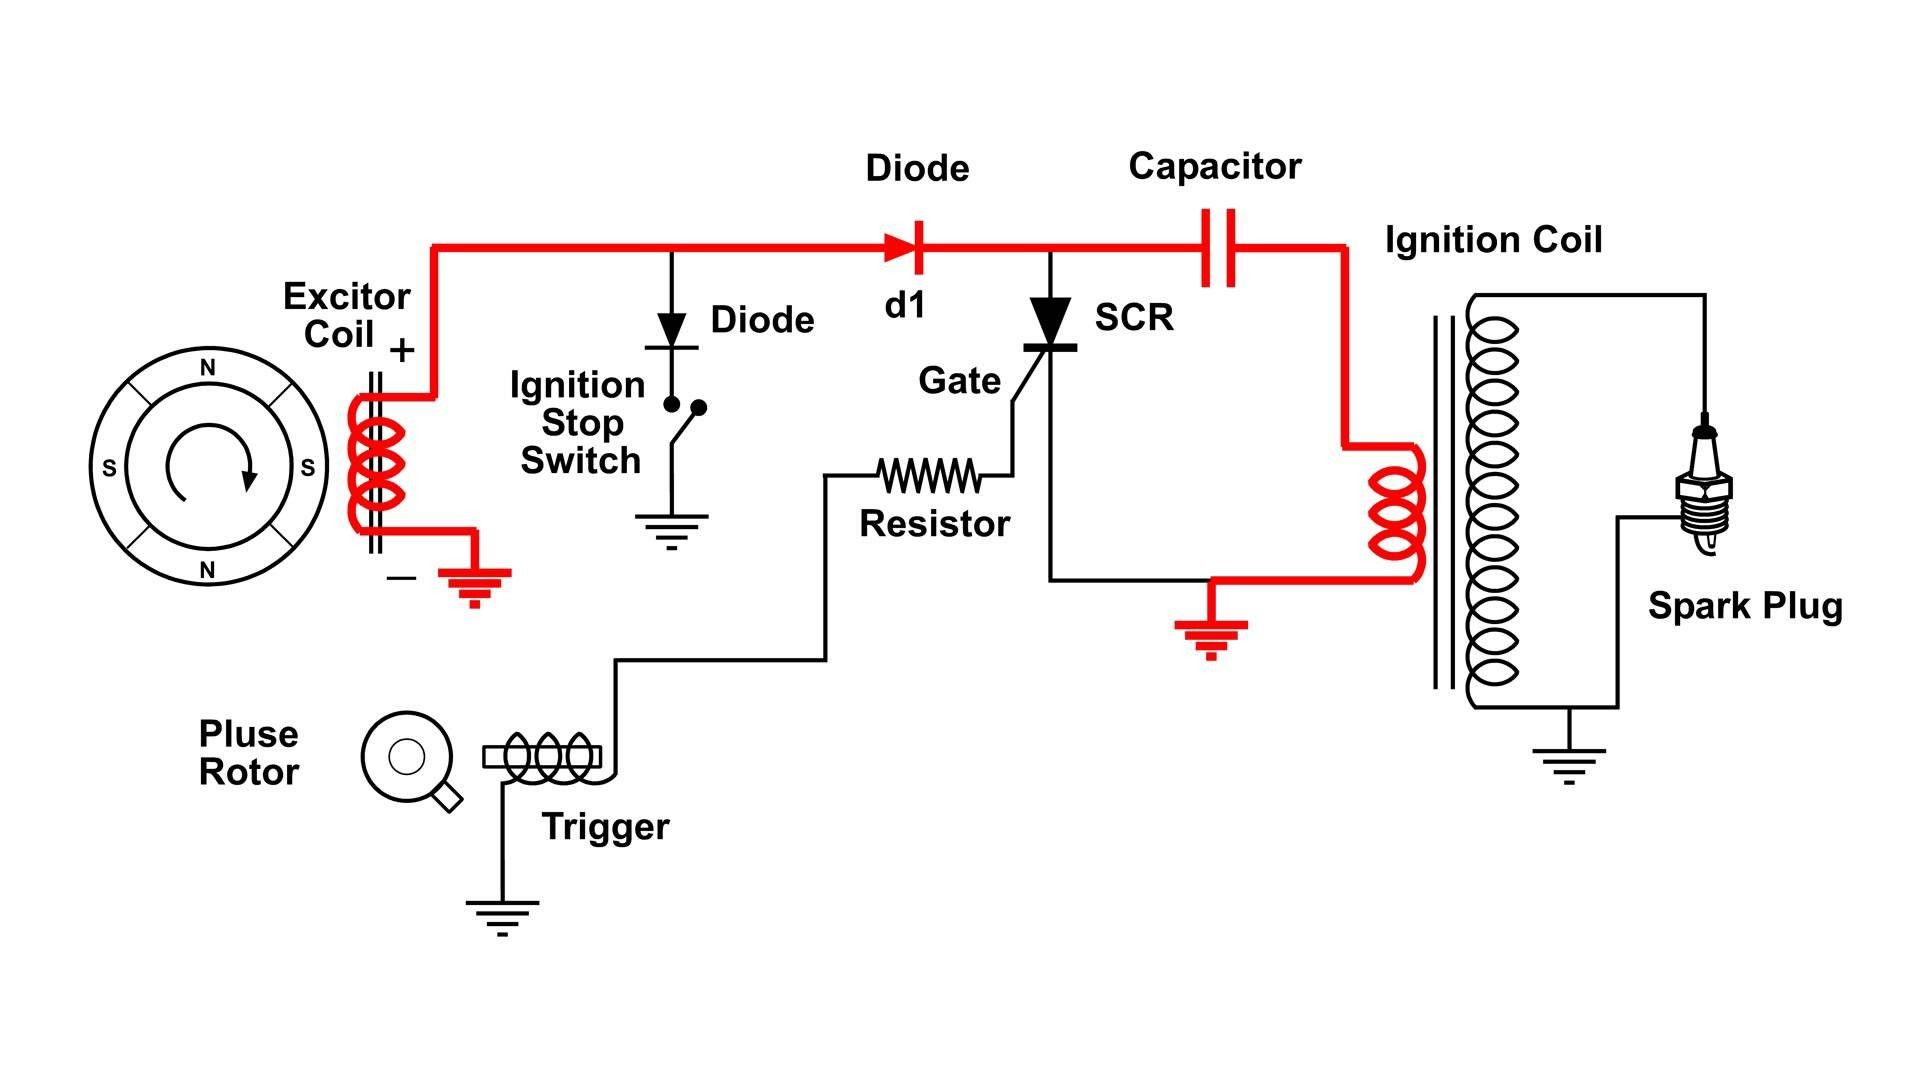 hight resolution of magneto wiring diagram wiring diagram mega magneto ignition system wiring diagram best cdi capacitor discharge tecumseh